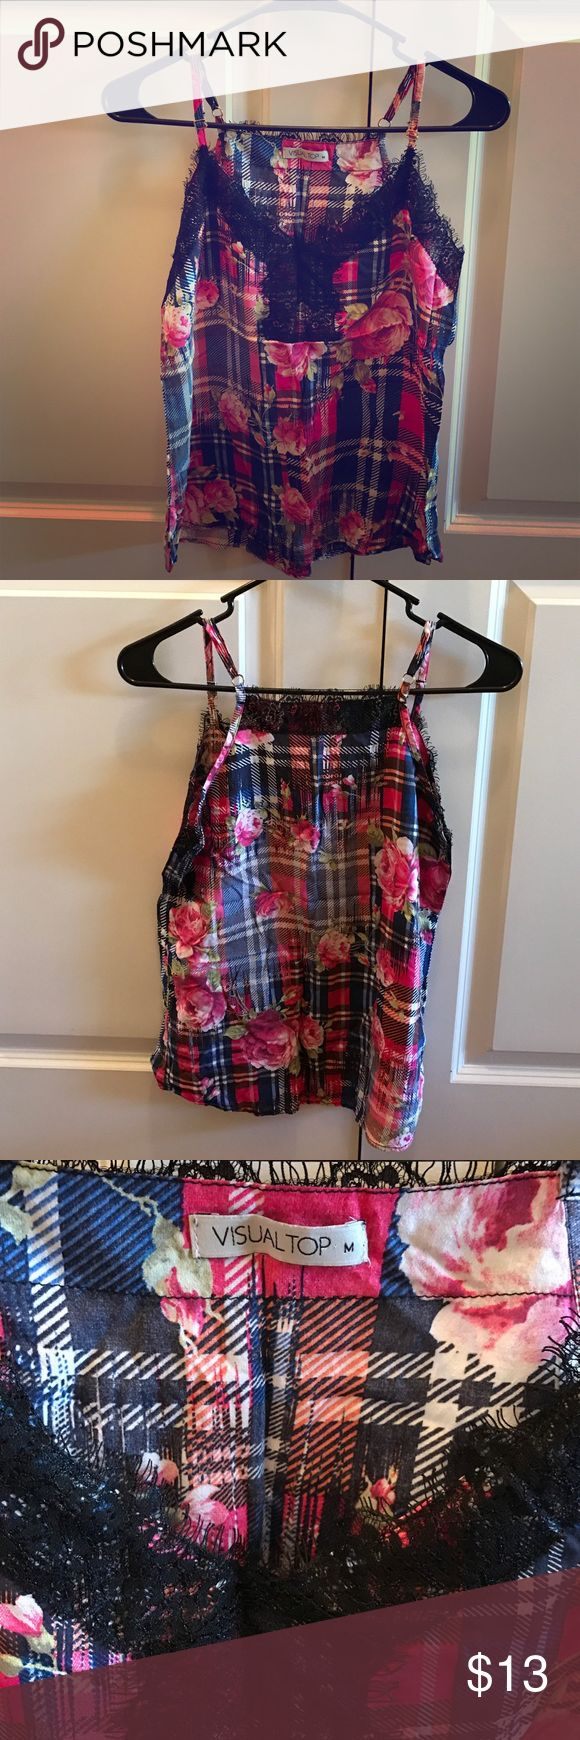 VISUAL TOP (international brand) flower top Wore it once for New Years in Brazil. This top is super versatile. Looks cute with jeans, shorts, or skirts! 🌺 Tops Tank Tops